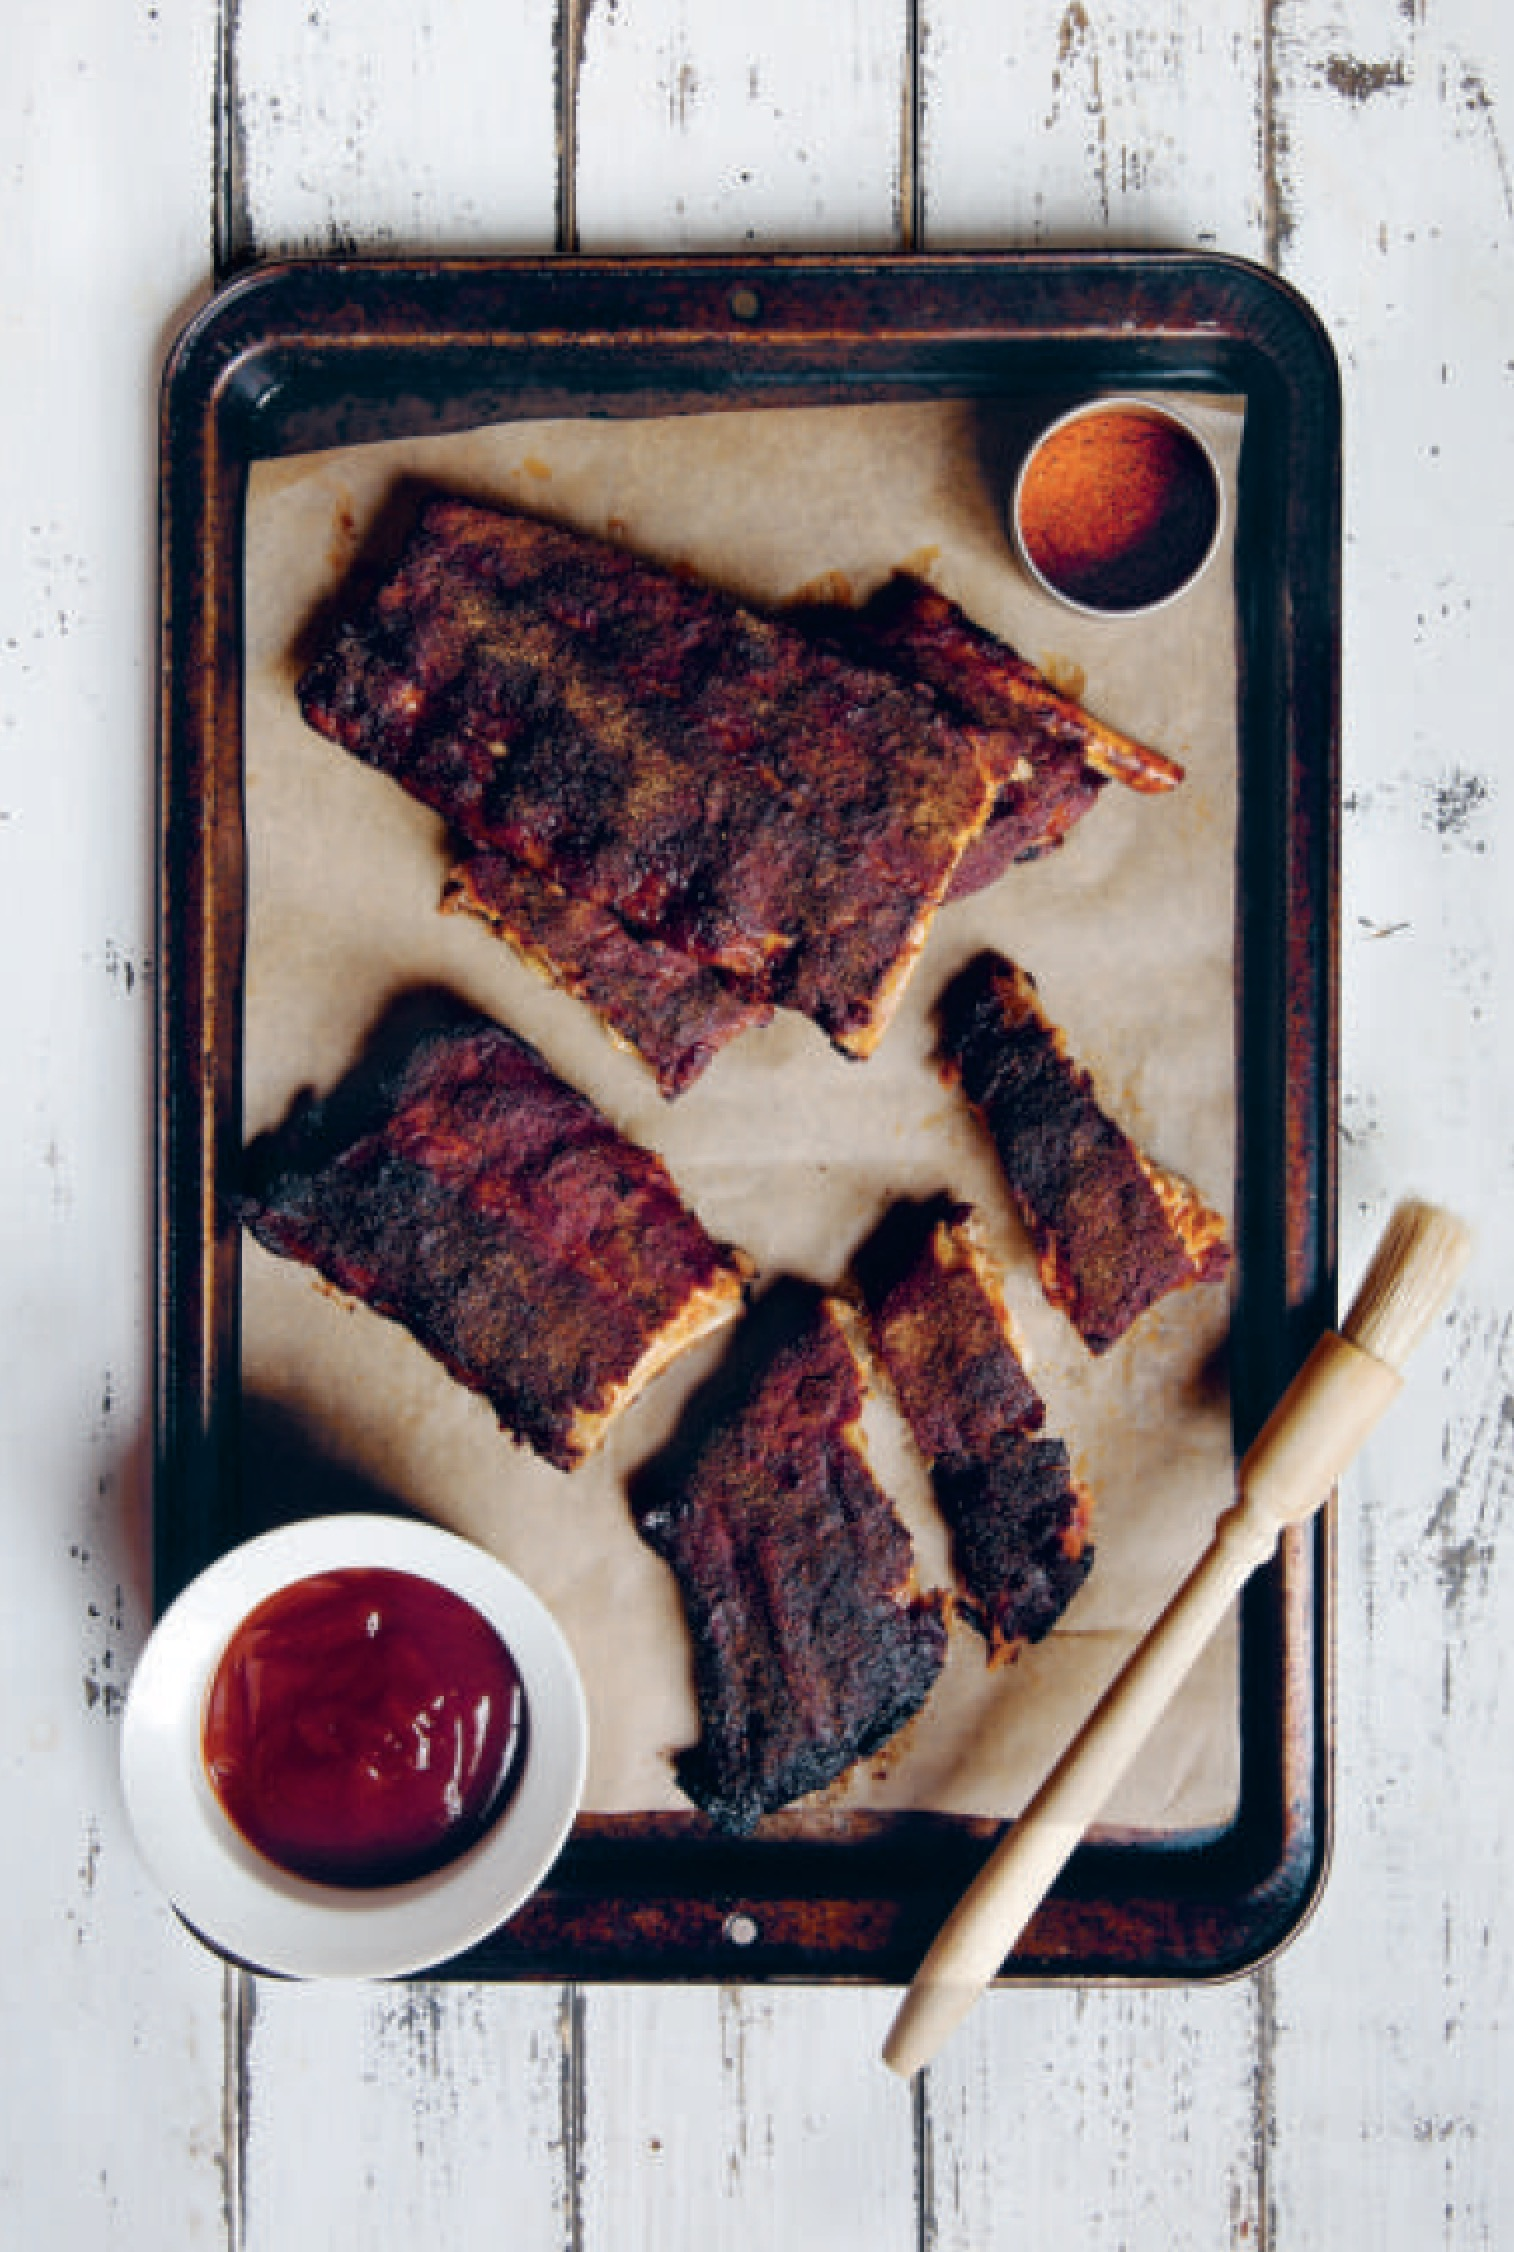 Memphis Style Barbecued Pork Ribs - from America the Cookbook